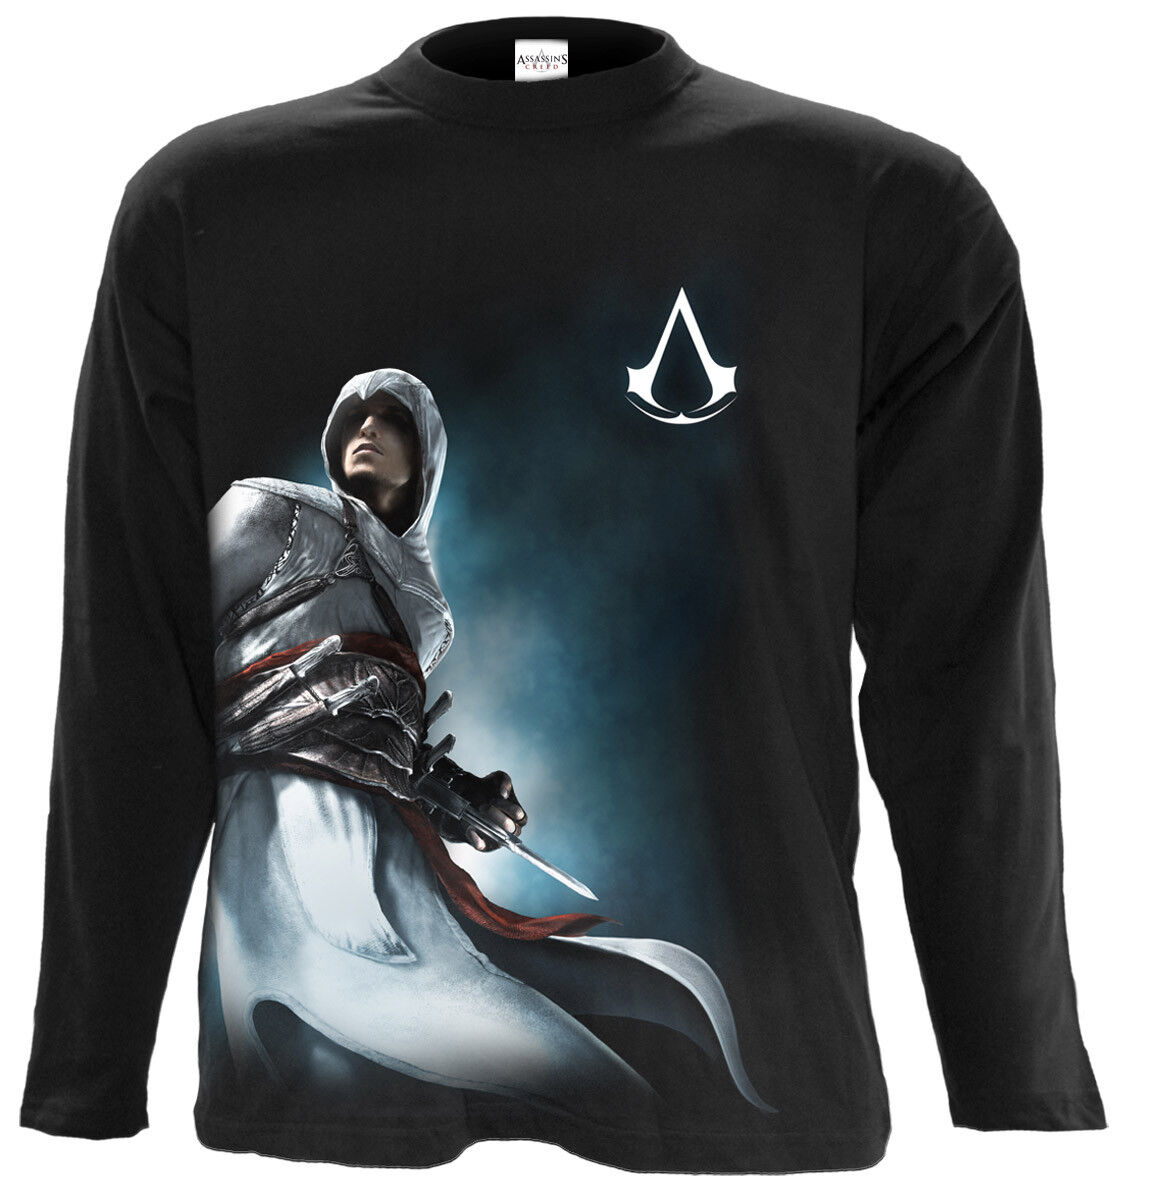 OFFICIAL LICENSED SPIRAL ALTAIR SIDE PRINT- ASSASSINS CREED LONG SLEEVE T-SHIRT